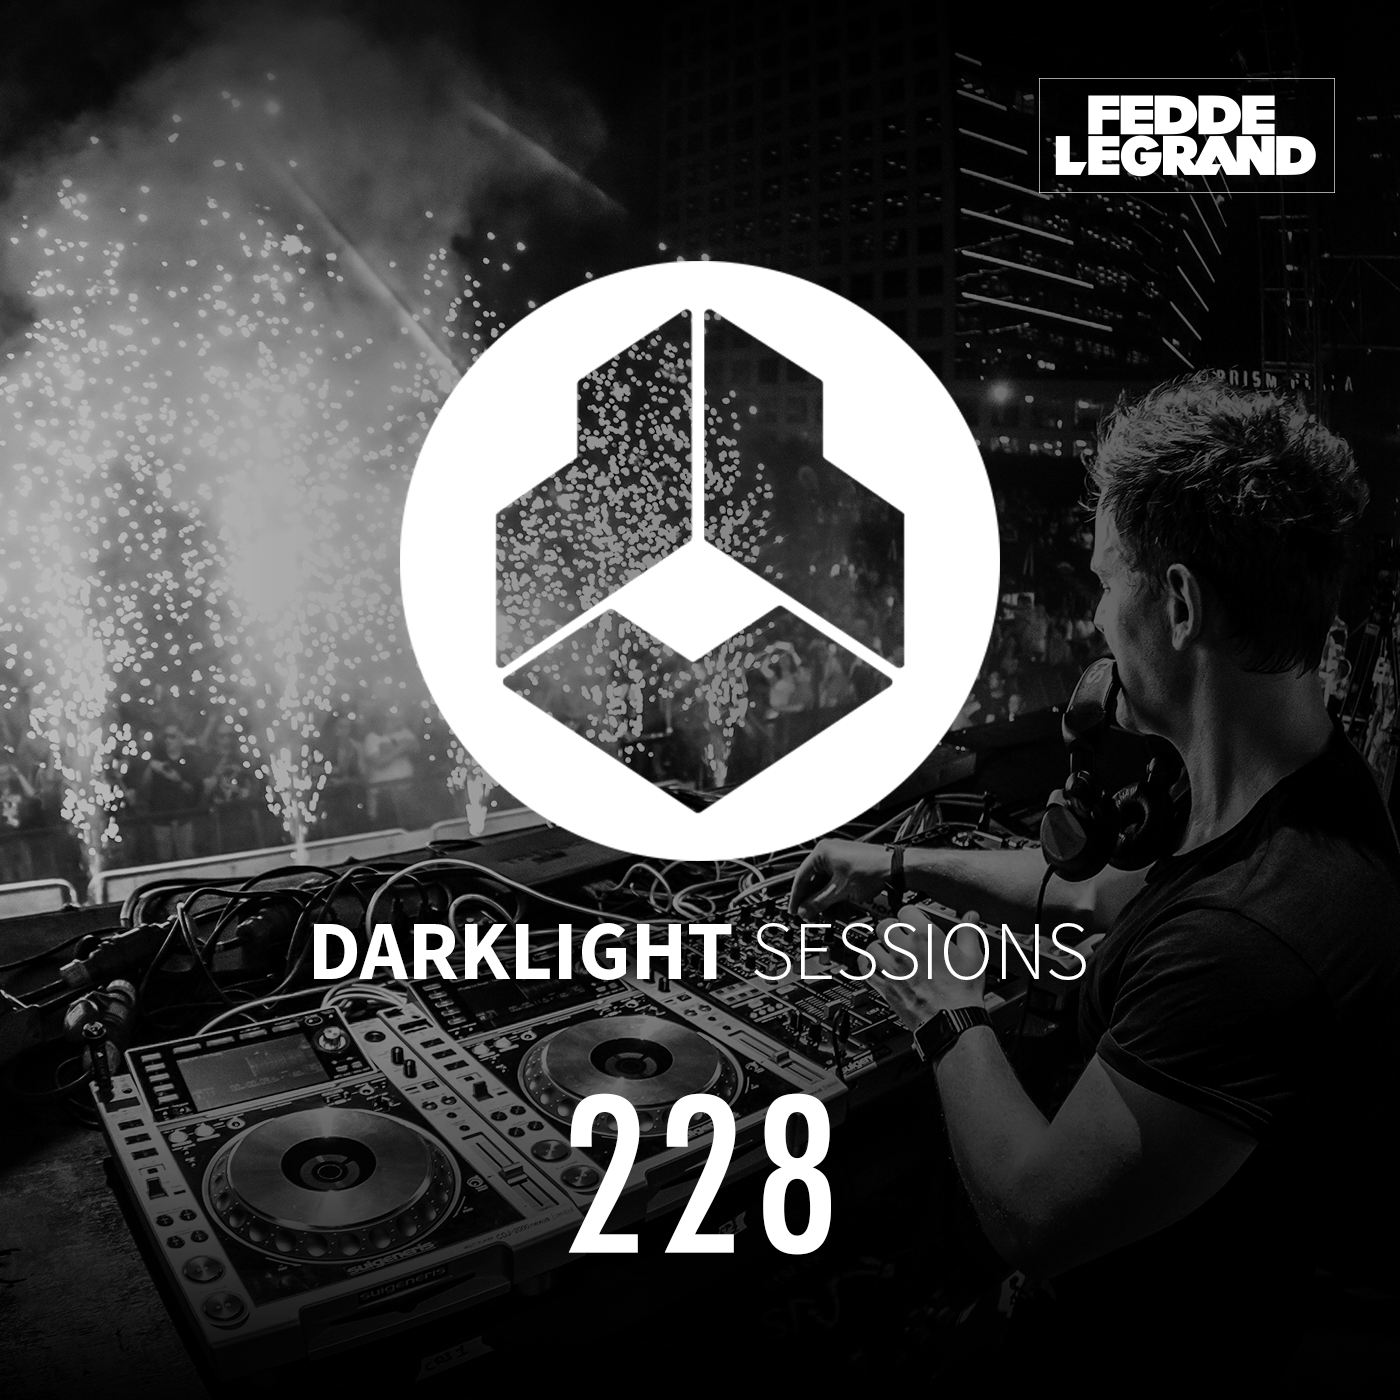 Darklight Sessions 228 (2016 YearMix)